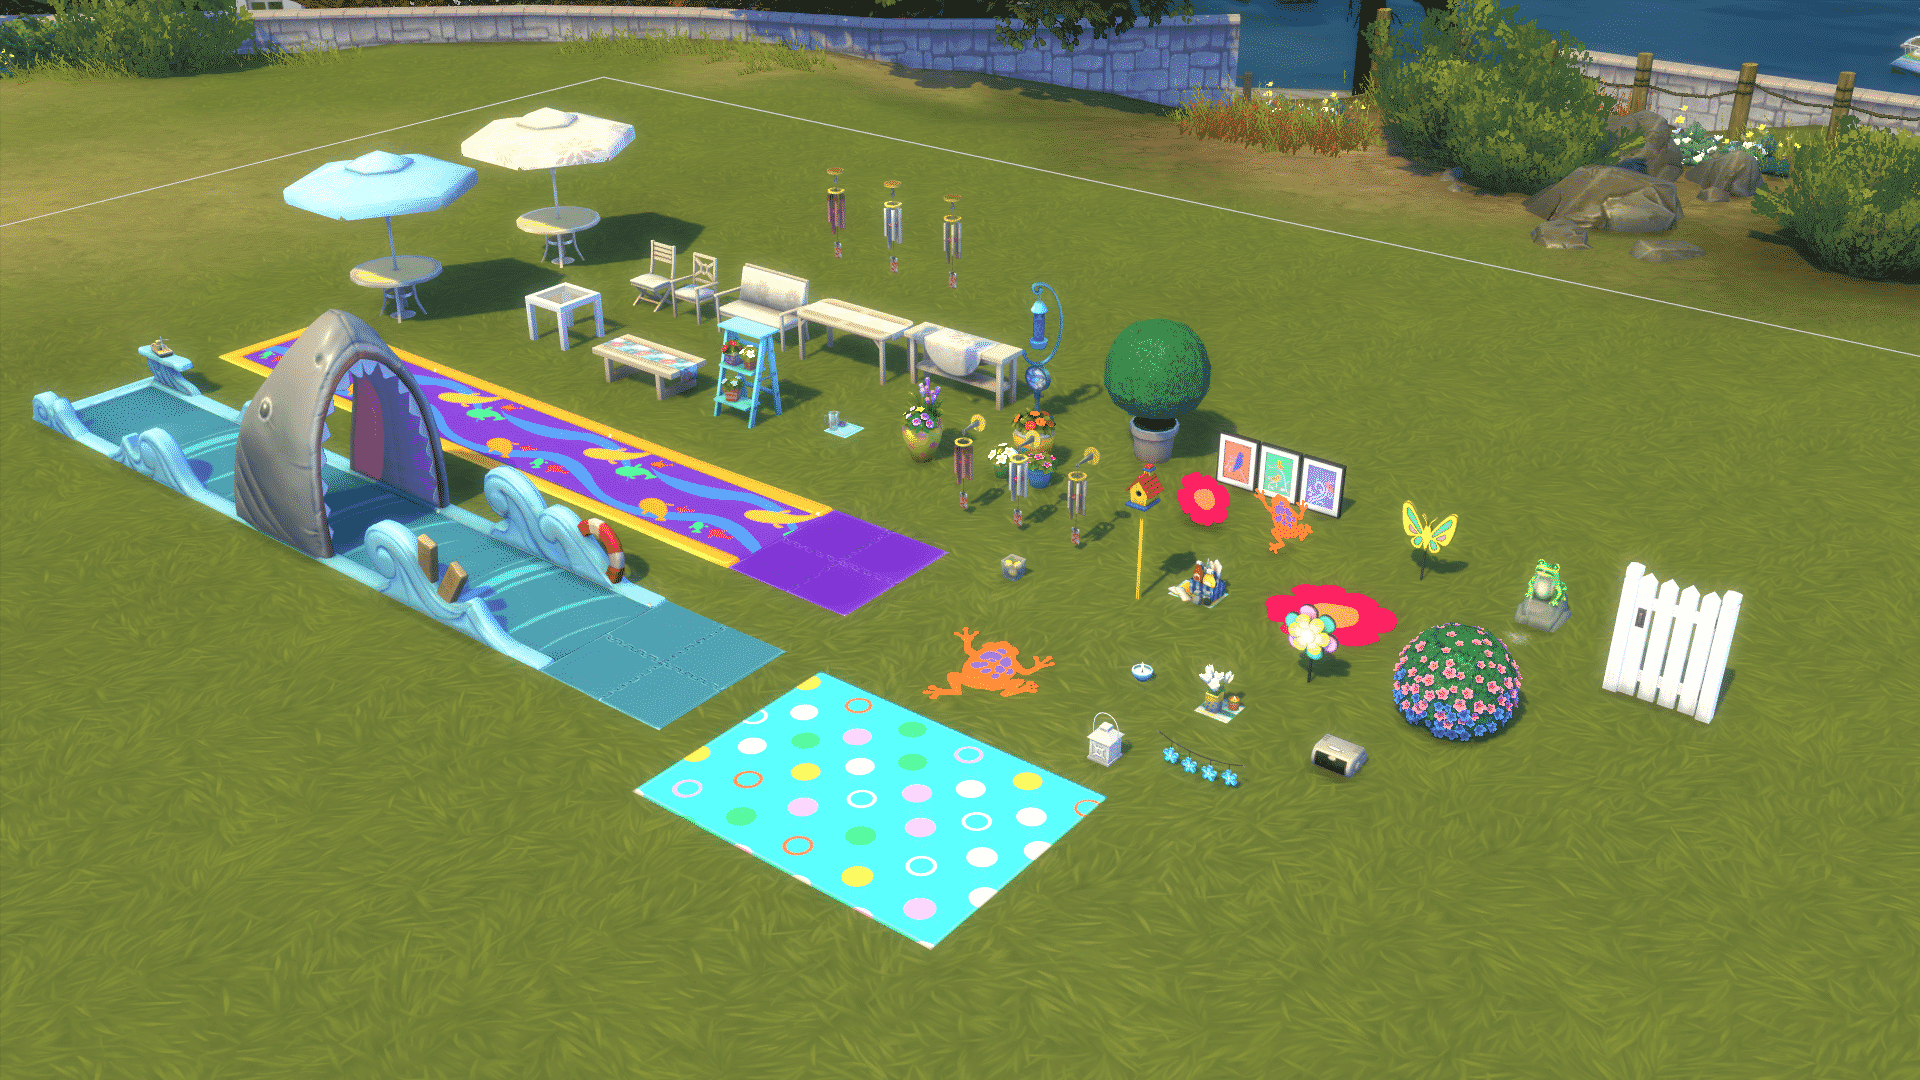 Comparing The Sims 4 Stuff Packs To The Sims 3 Stuff Packs